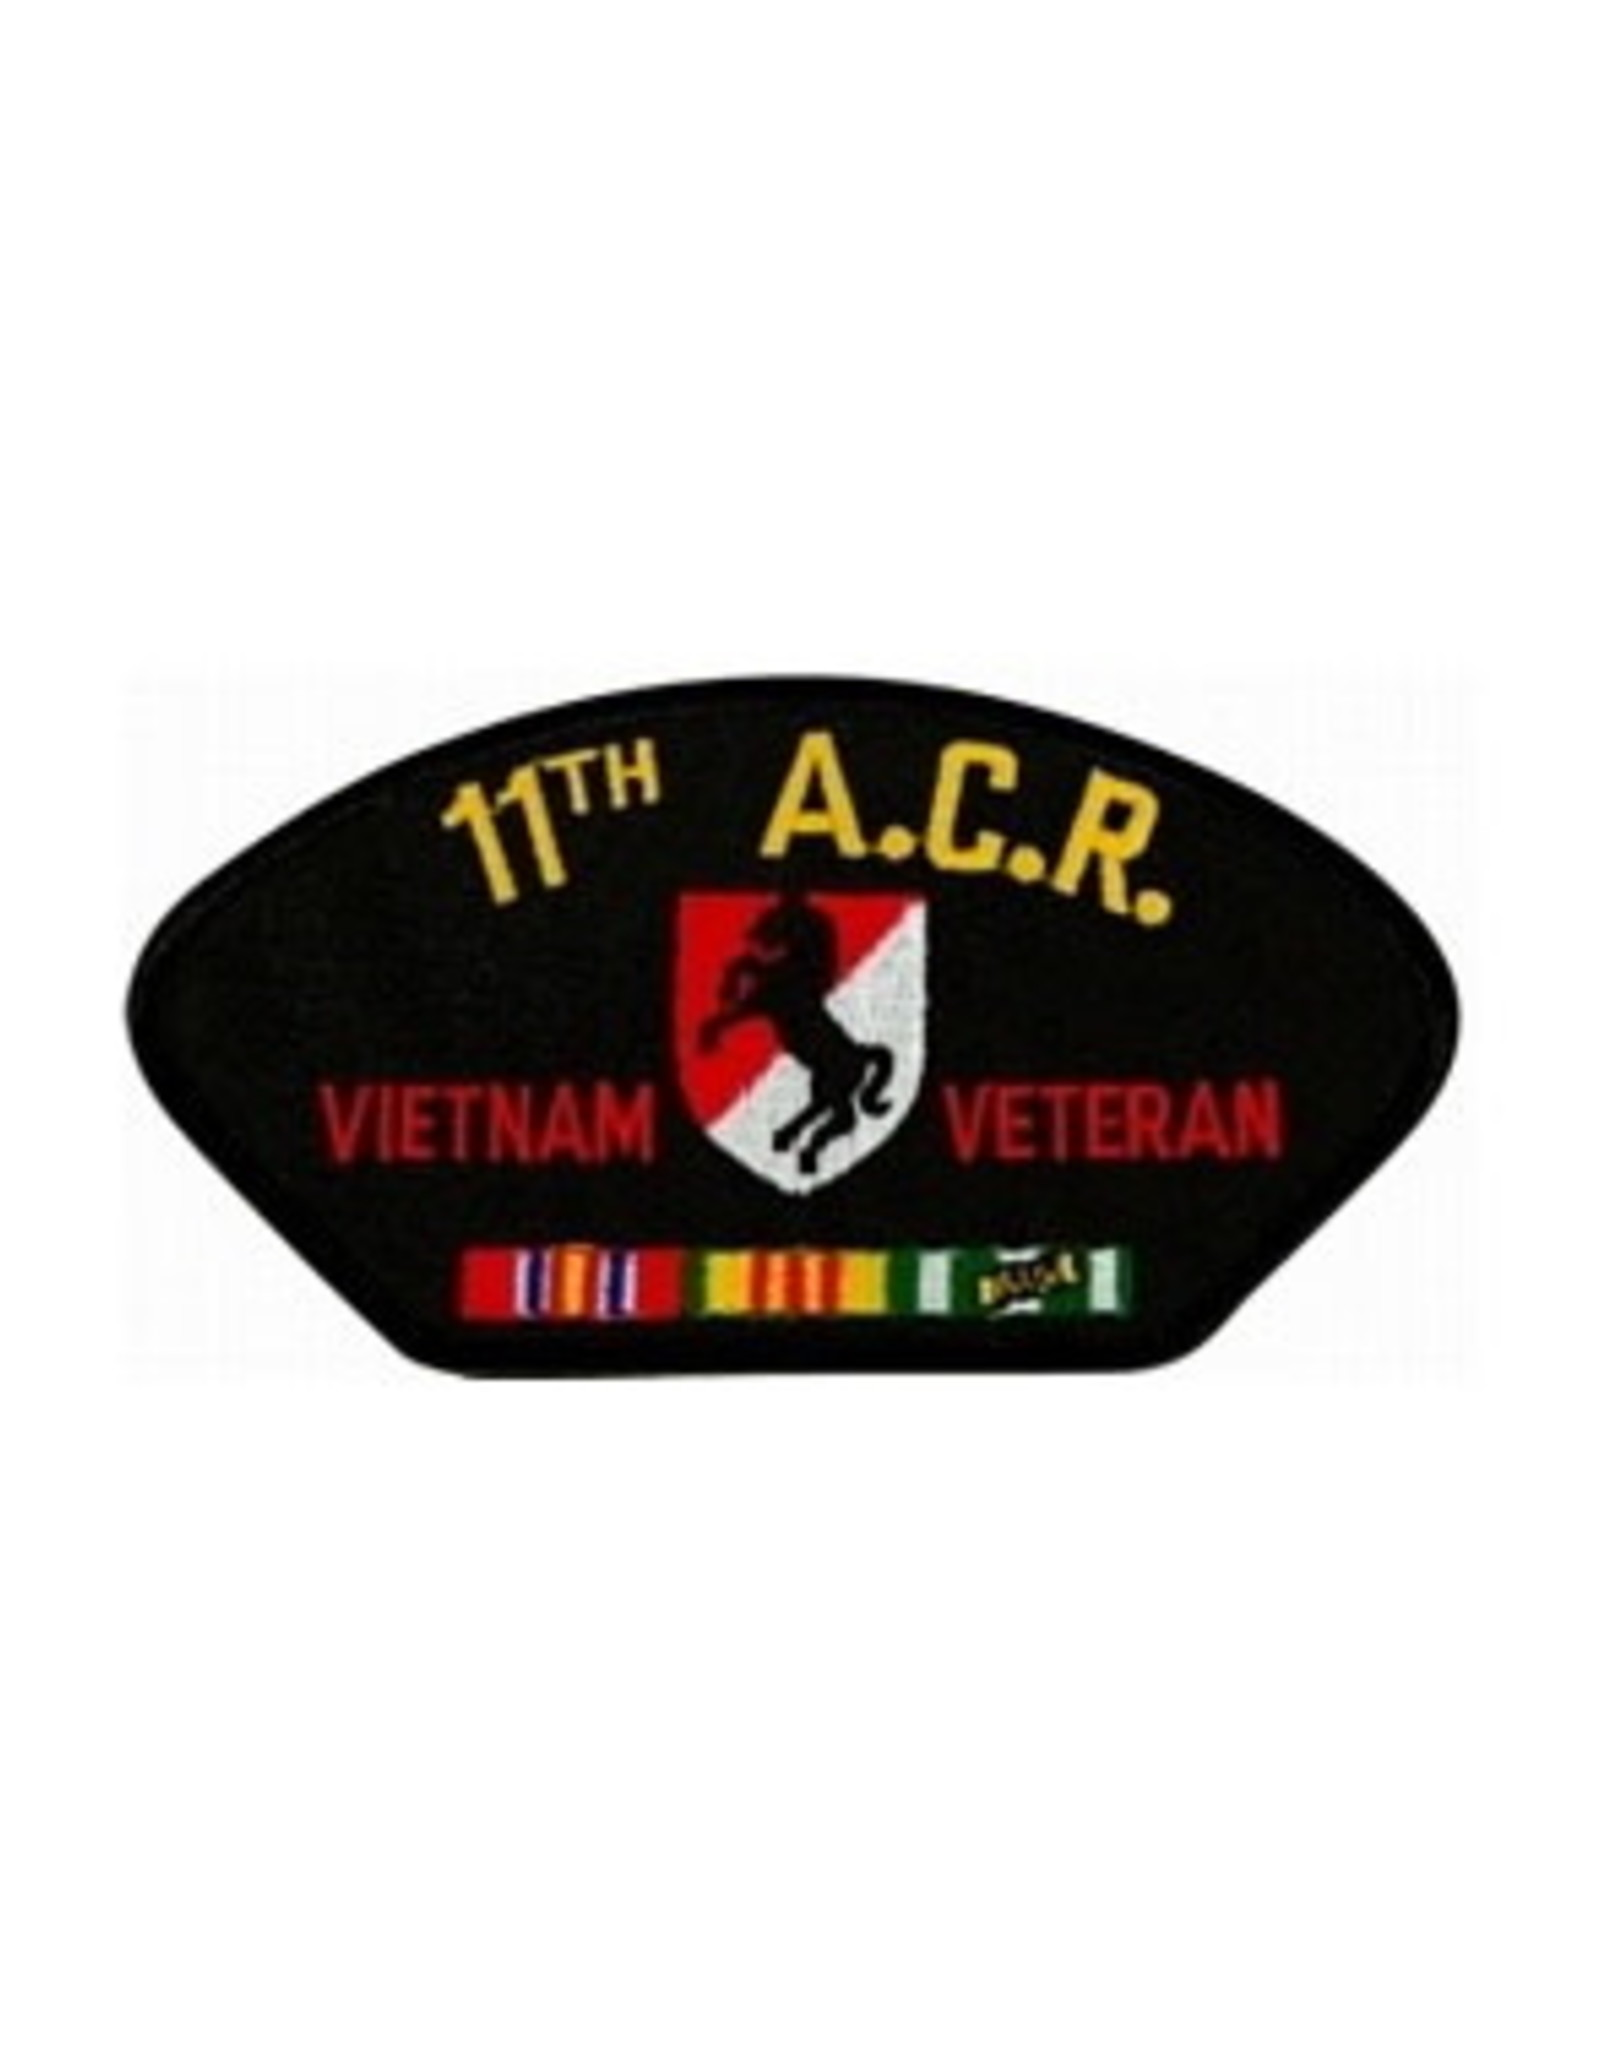 """MidMil Embroidered 11th A.C.R. Vietnam Veteran Patch with Emblem and Ribbons 5.2"""" wide x 2.7"""" high Black"""